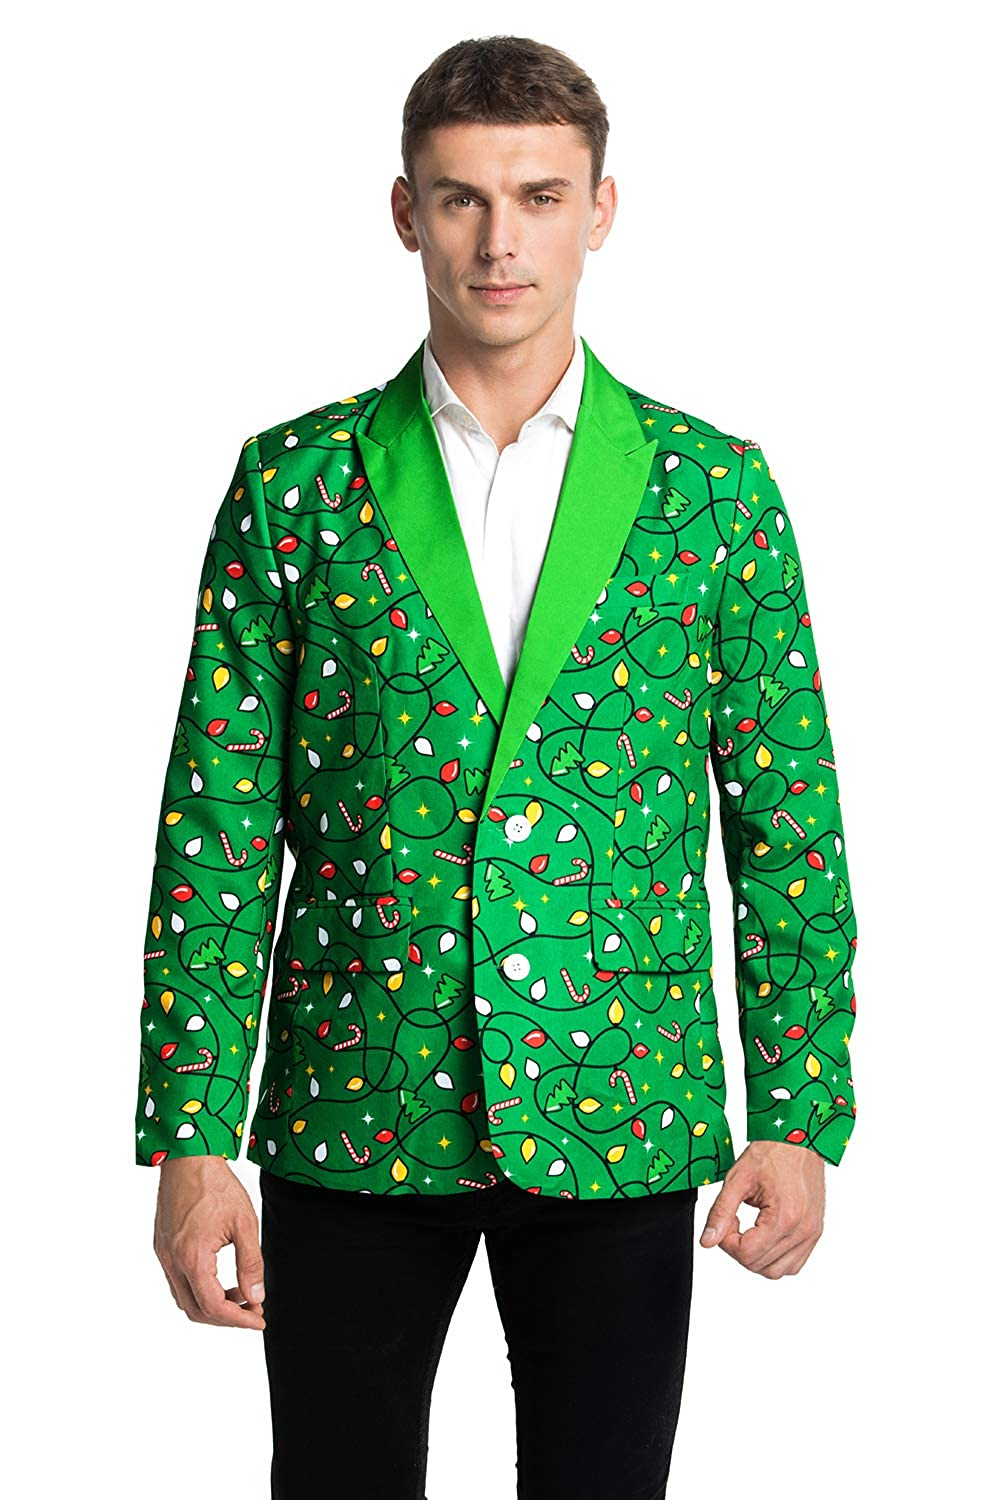 U LOOK UGLY TODAY Men/'s Christmas Party Blazer Funny Xmas Party Suit Jacket with Santa Reindeer